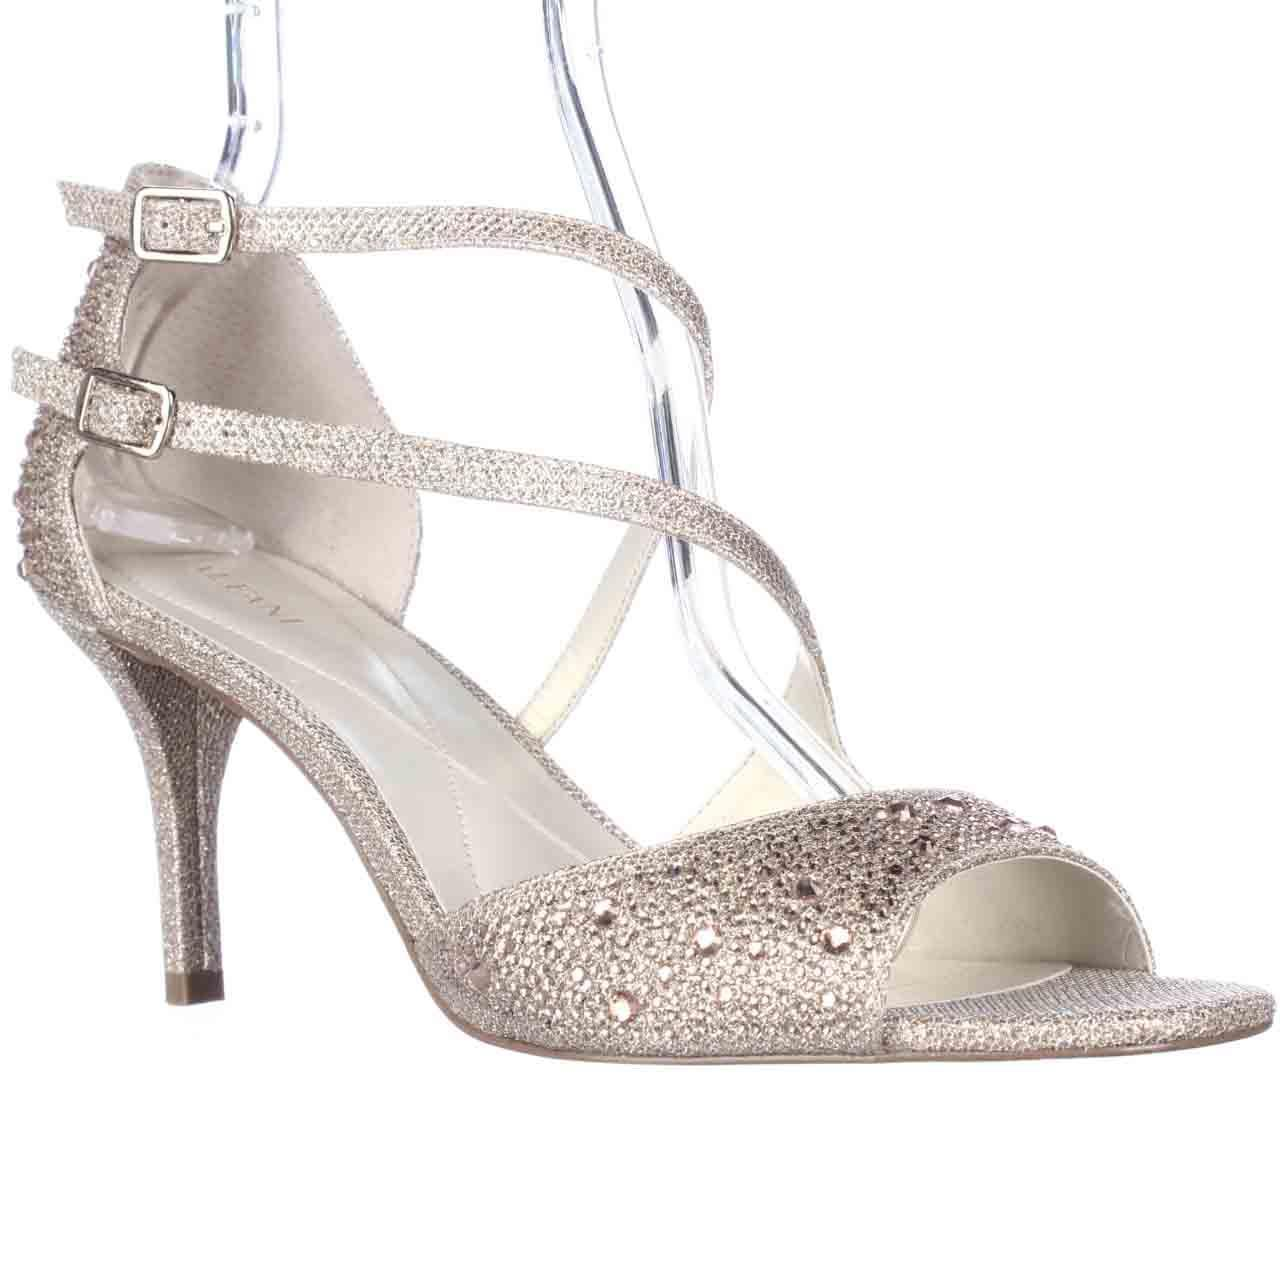 Image of Womens A35 Cremena Sparkle Strappy Dress Sandals, Nude